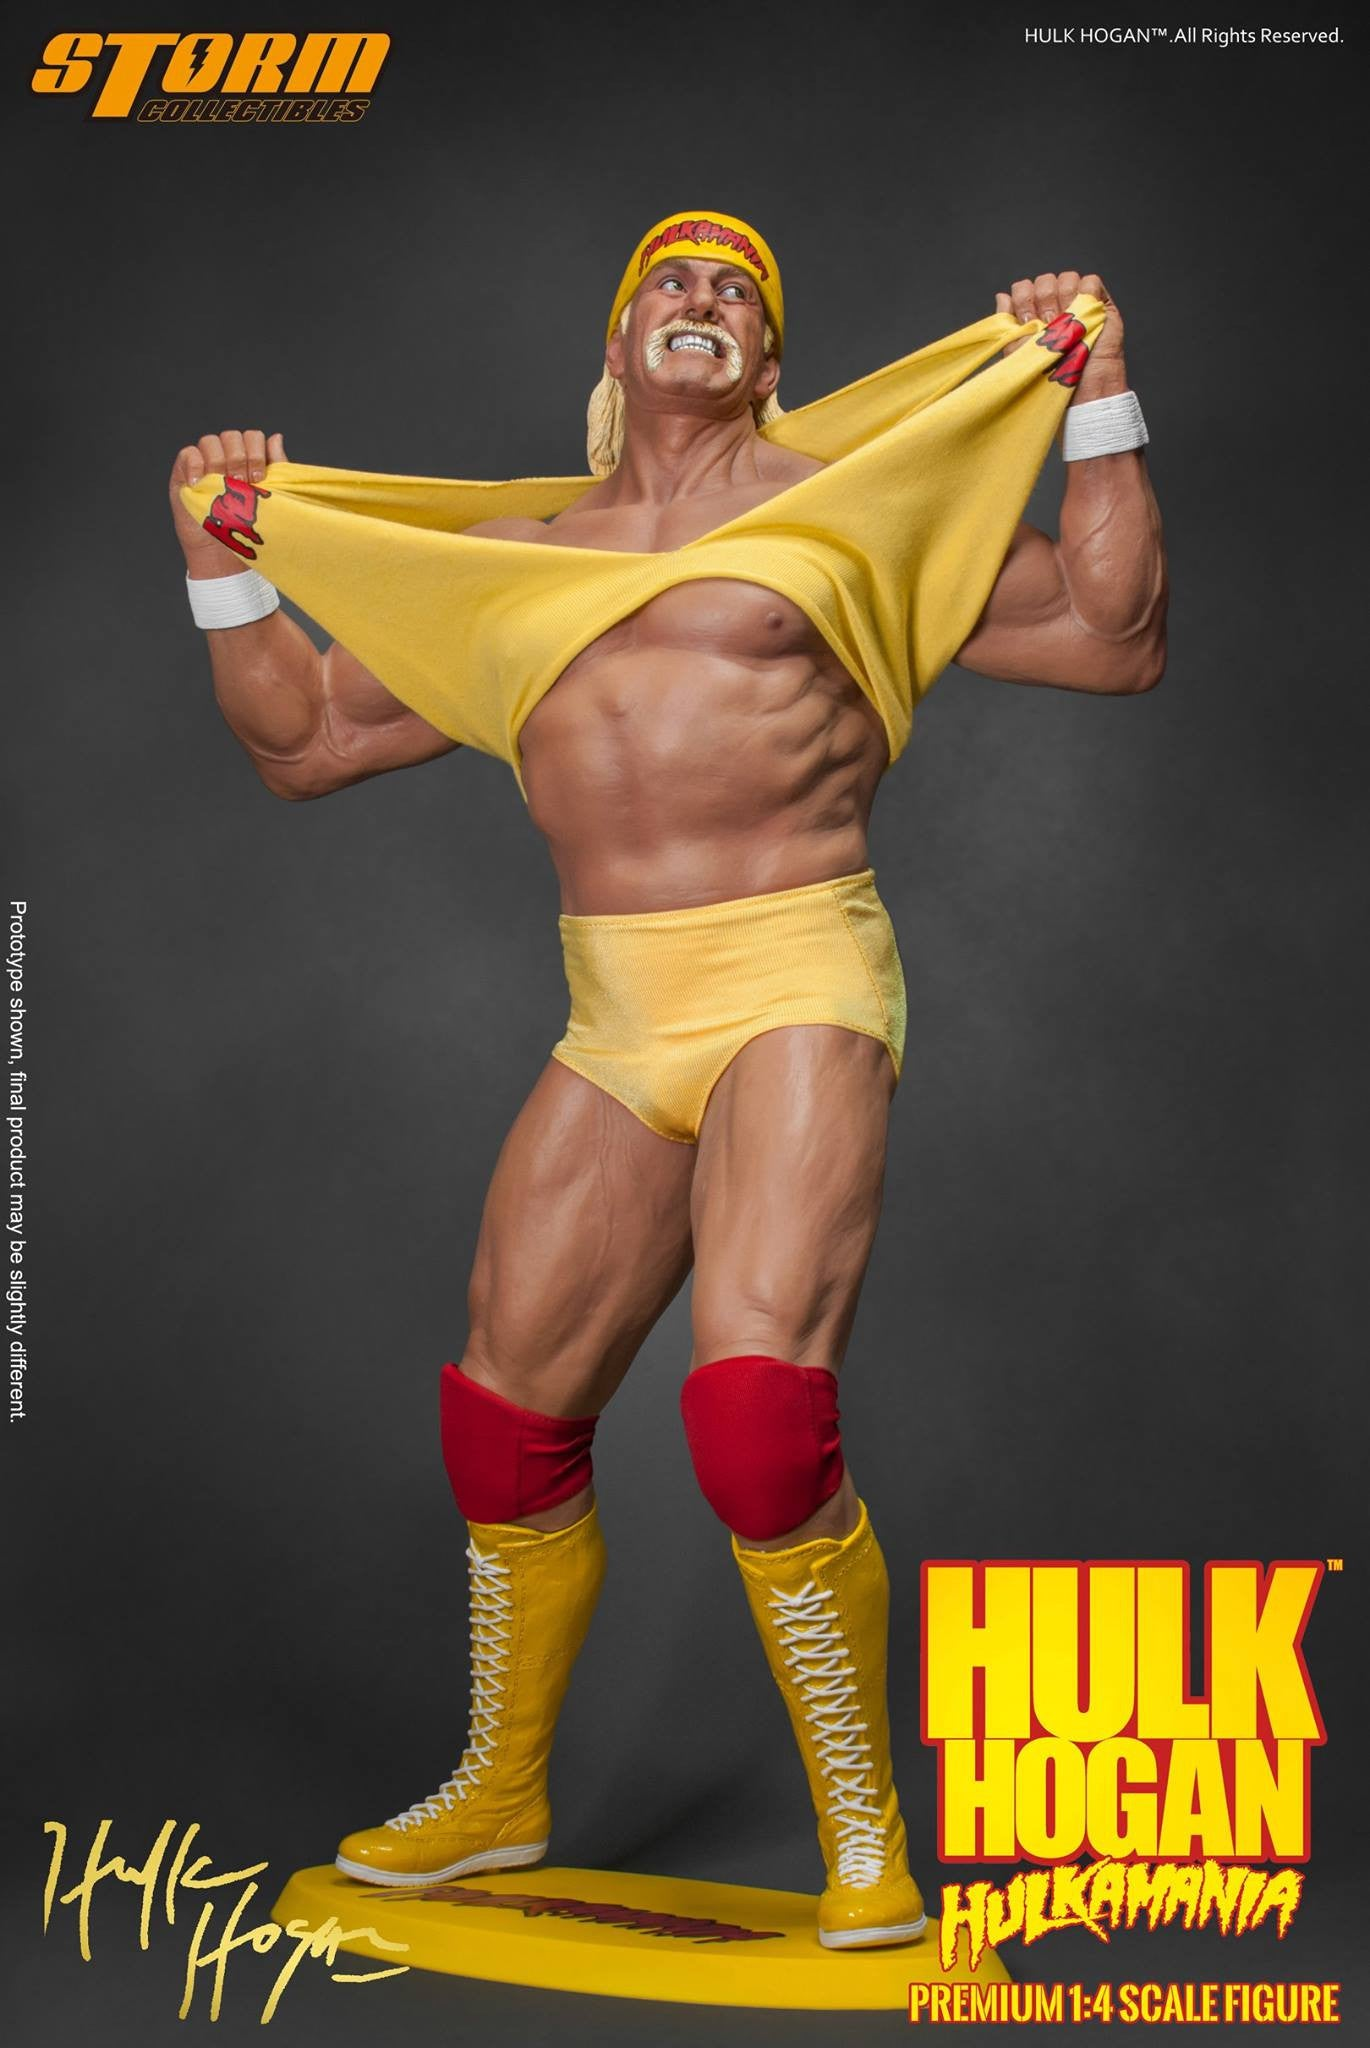 Storm Collectibles - 1/4th Scale Premium Figure - Hulk Hogan Hulkamania - Marvelous Toys - 5